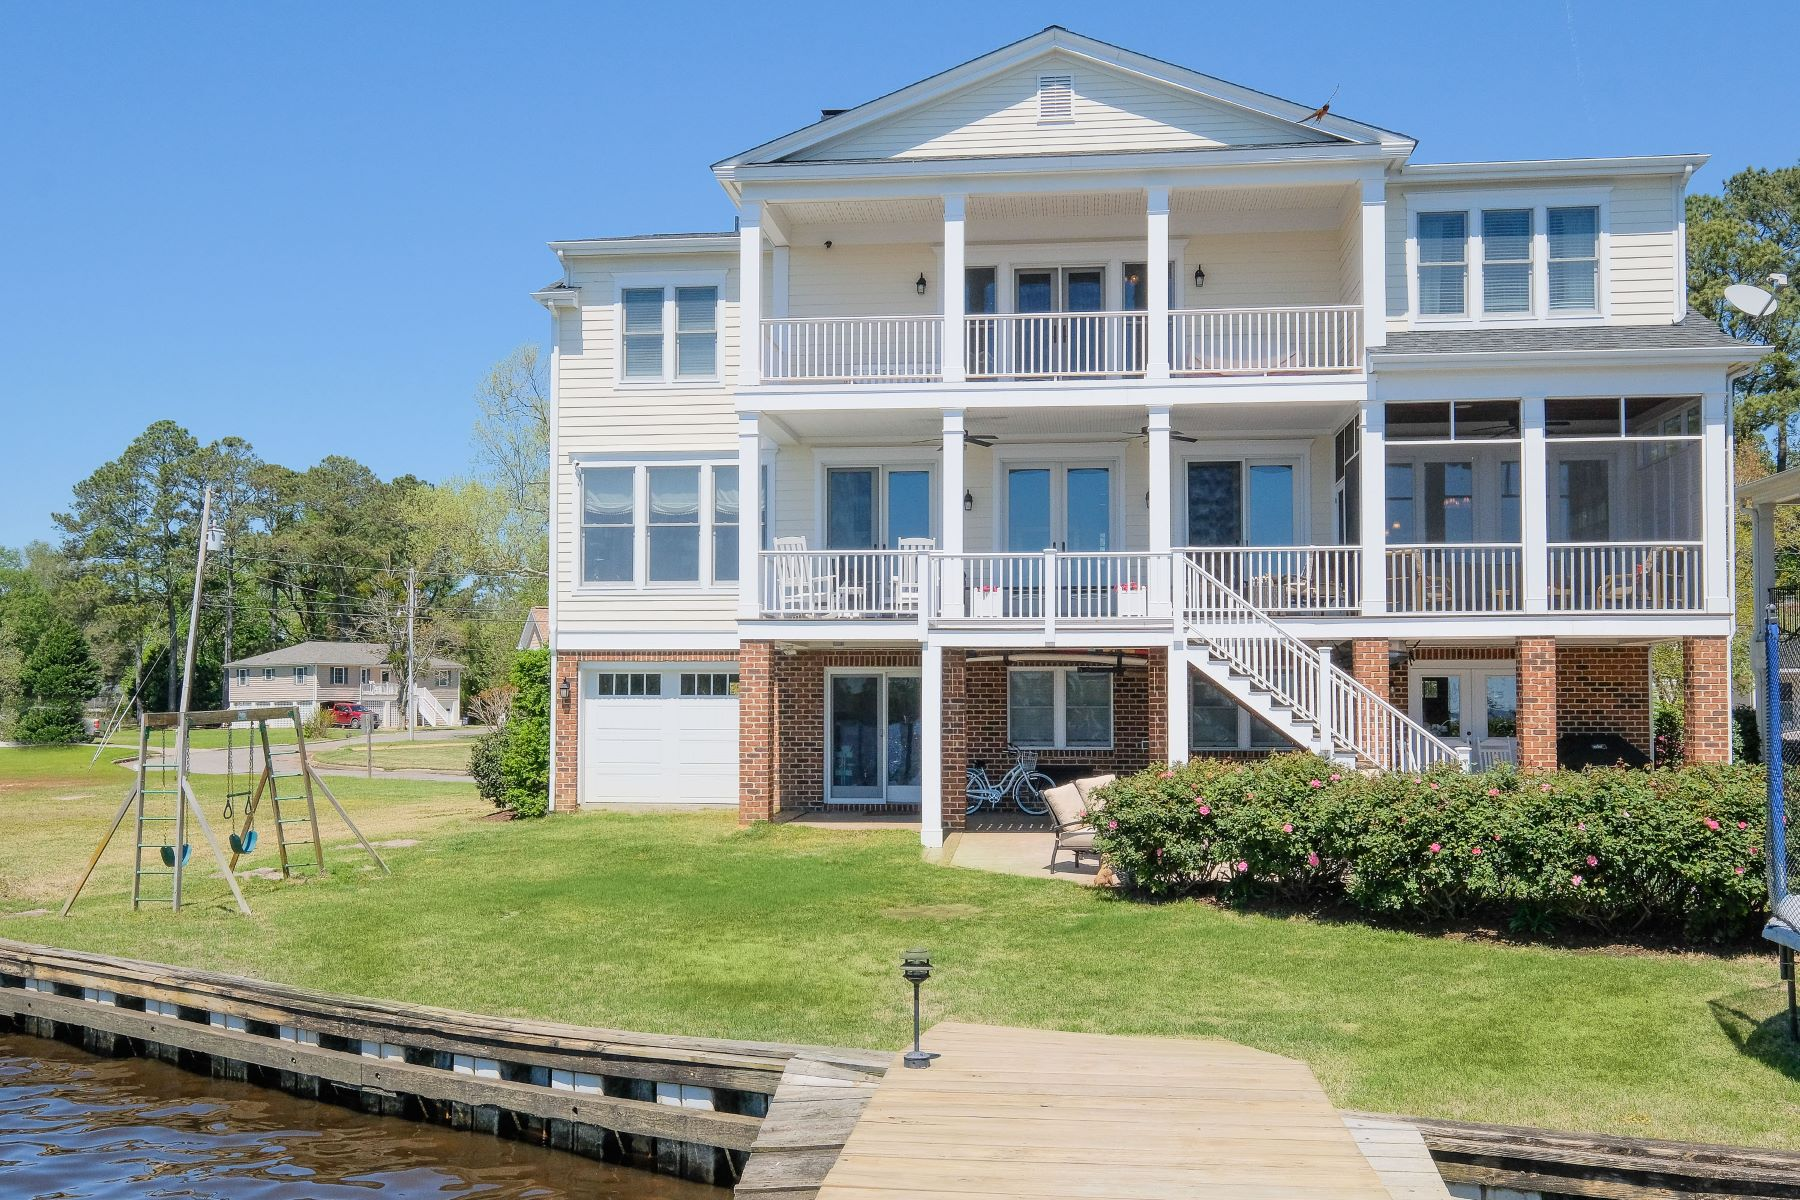 Property for Sale at NEW CUSTOM HOME, DOWNTOWN WATERFRONT 107 Pembroke Circle Edenton, North Carolina 27932 United States